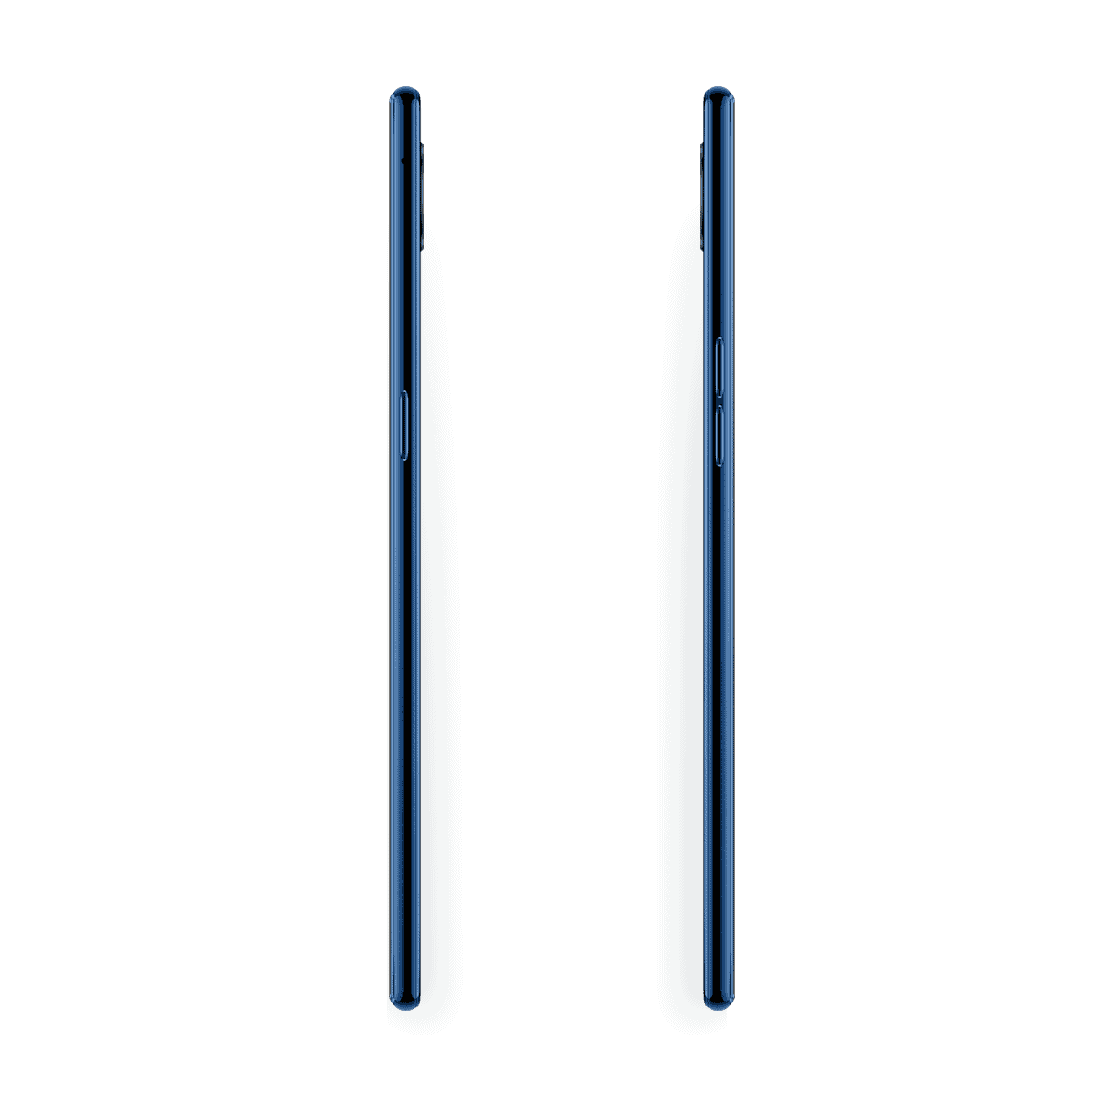 OPPO R17 official image 5